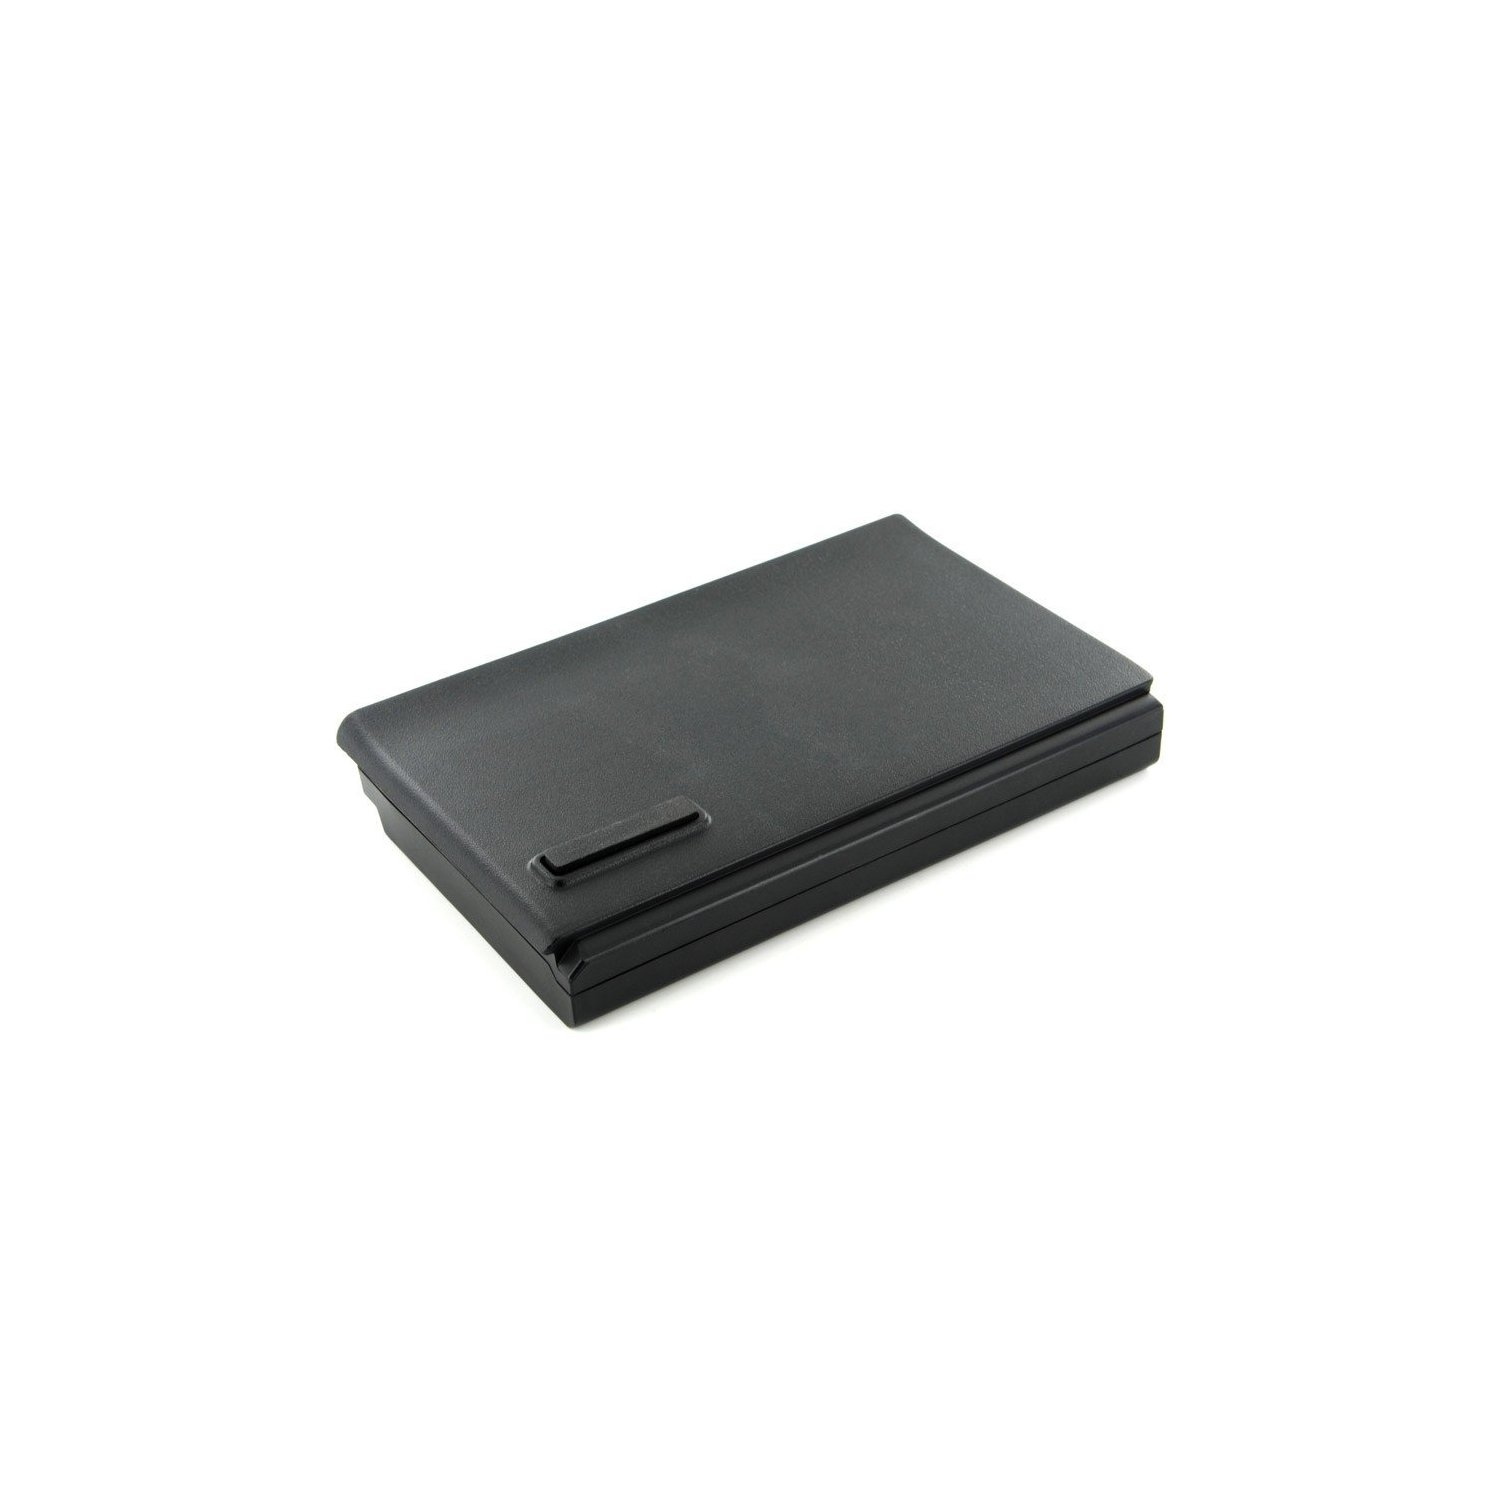 Acer Extensa 5635-6 Cell: New Laptop Replacement Battery for ACER EXTENSA 5635-6011,11.1v,6 cells